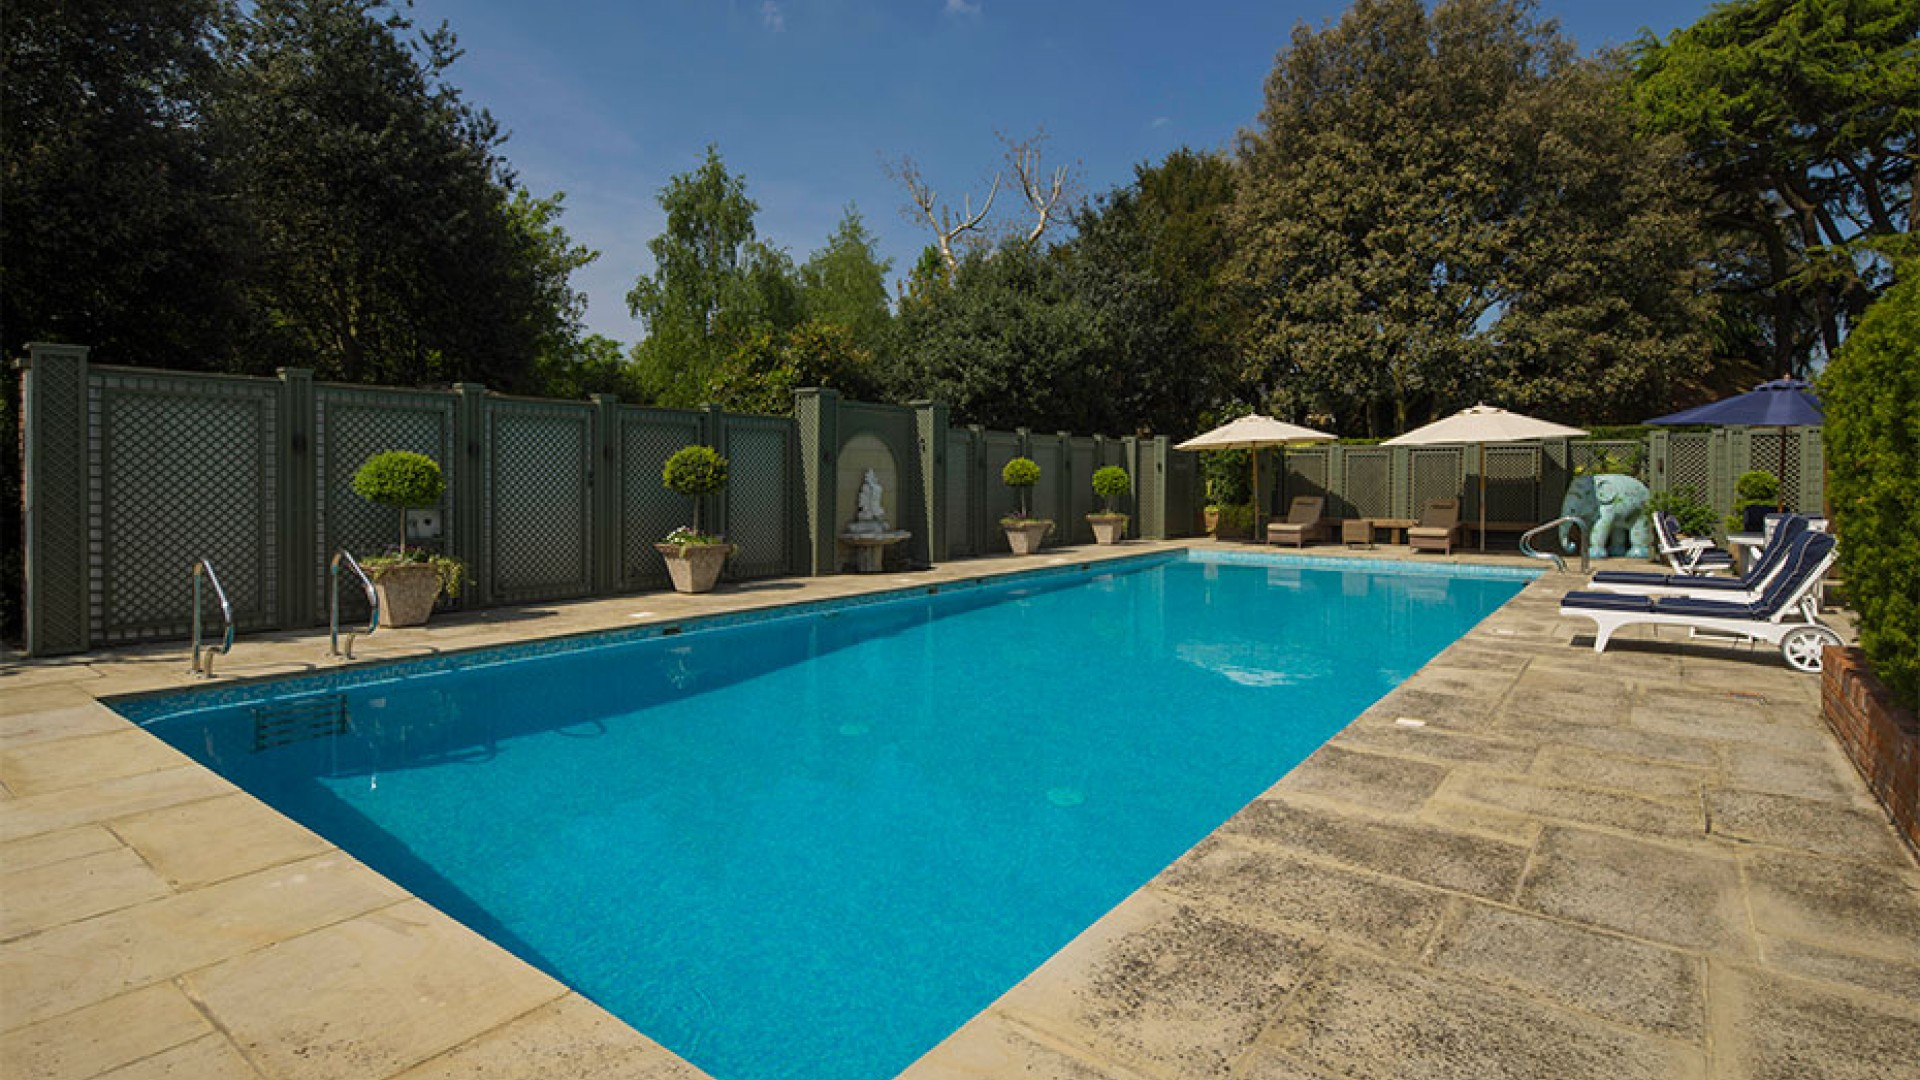 London apartments with pools square mile - Apartments with swimming pool london ...